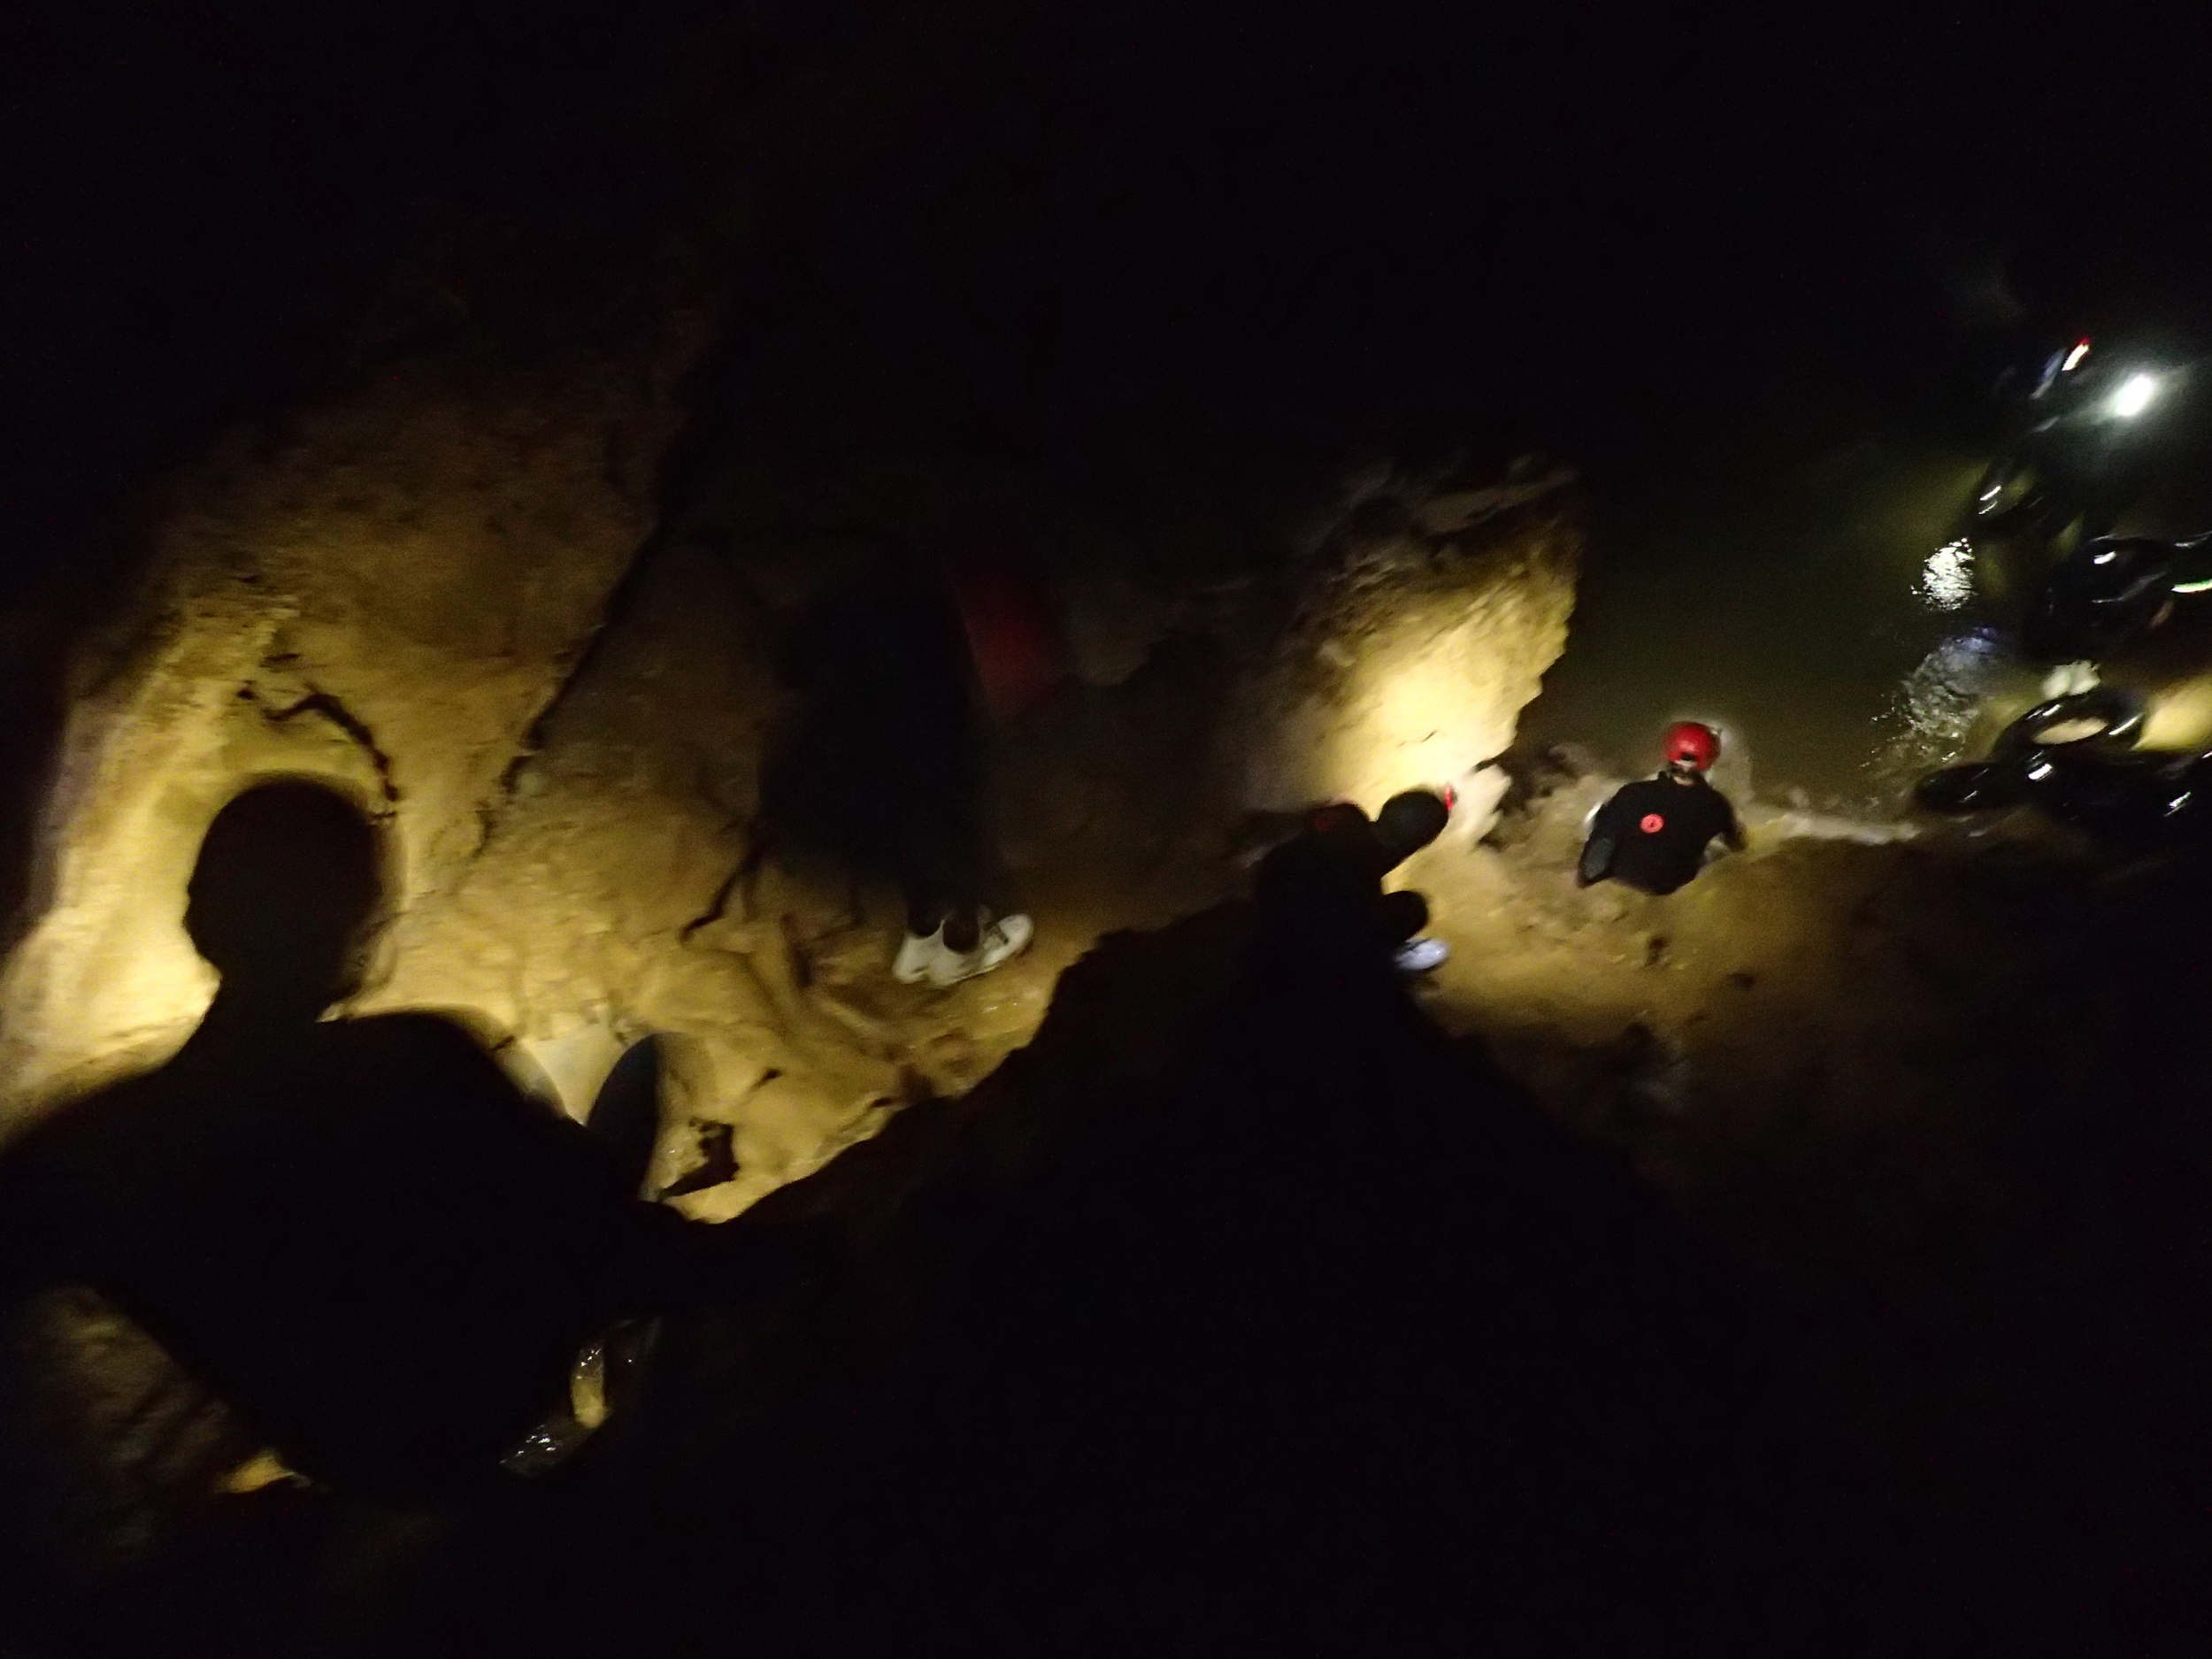 The steep and muddy climb down from the cavern.